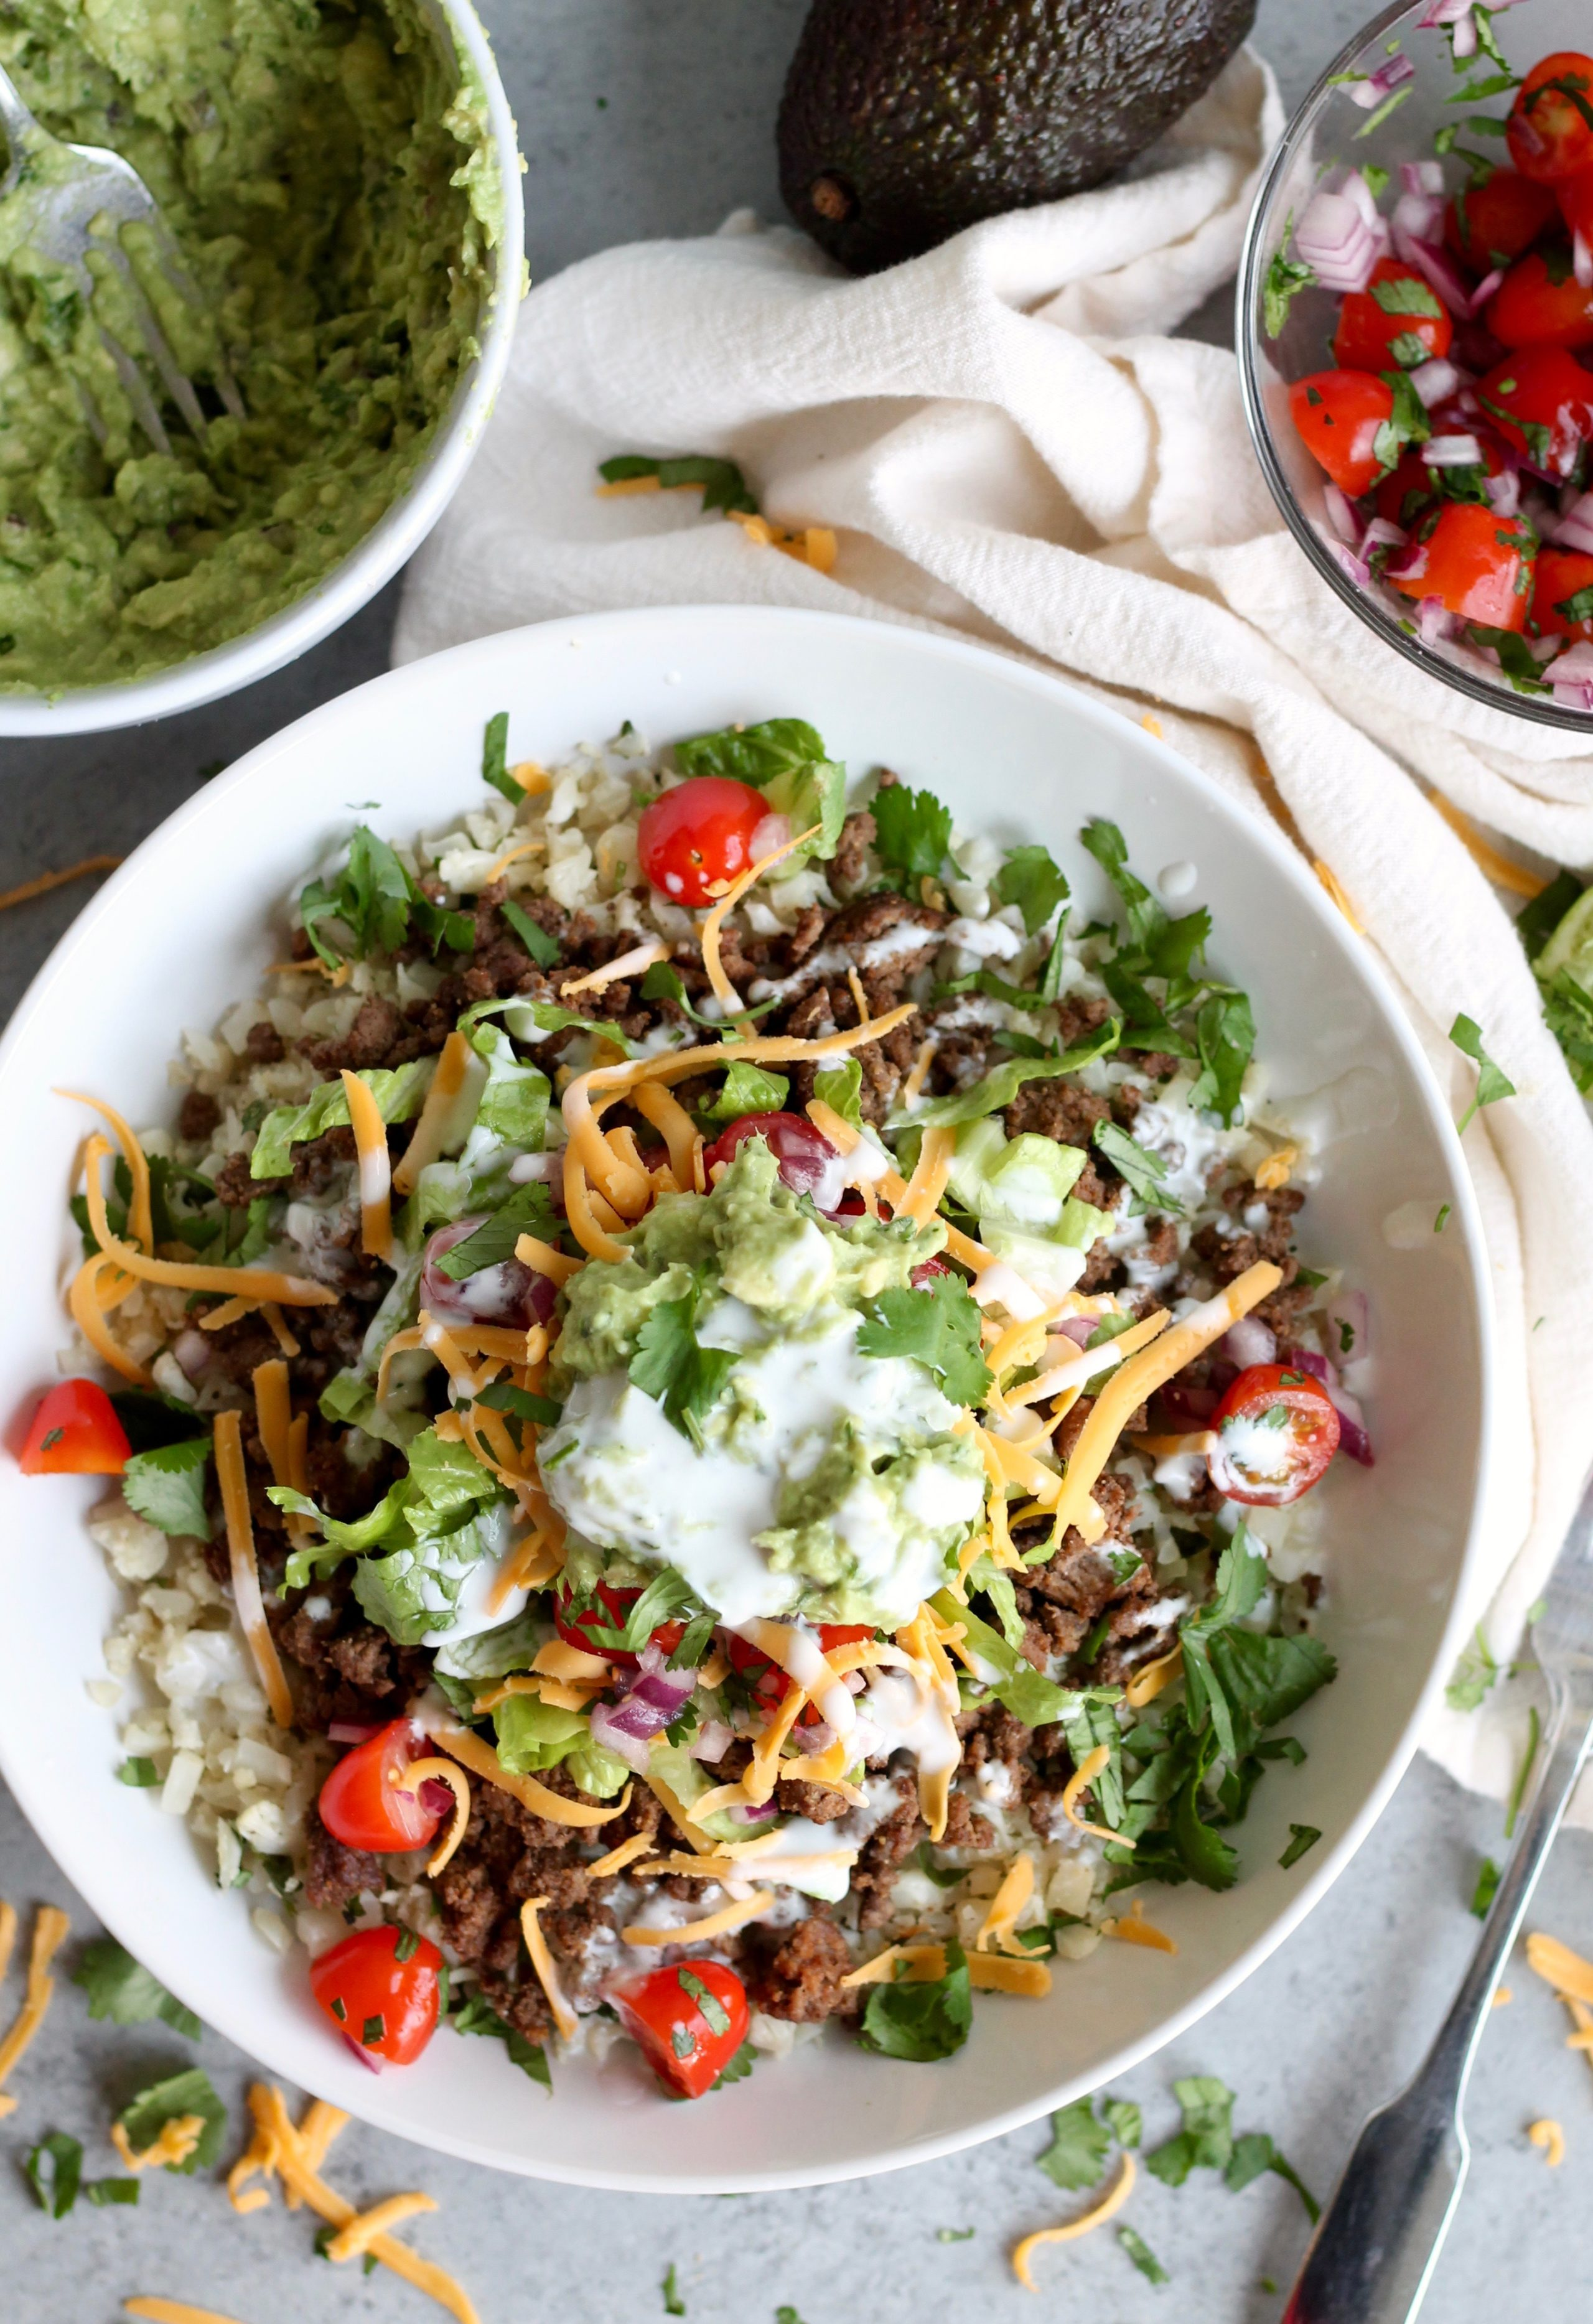 Beef Burrito Bowls with Cilantro Lime Cauliflower Rice from spicesinmydna.com on foodiecrush.com